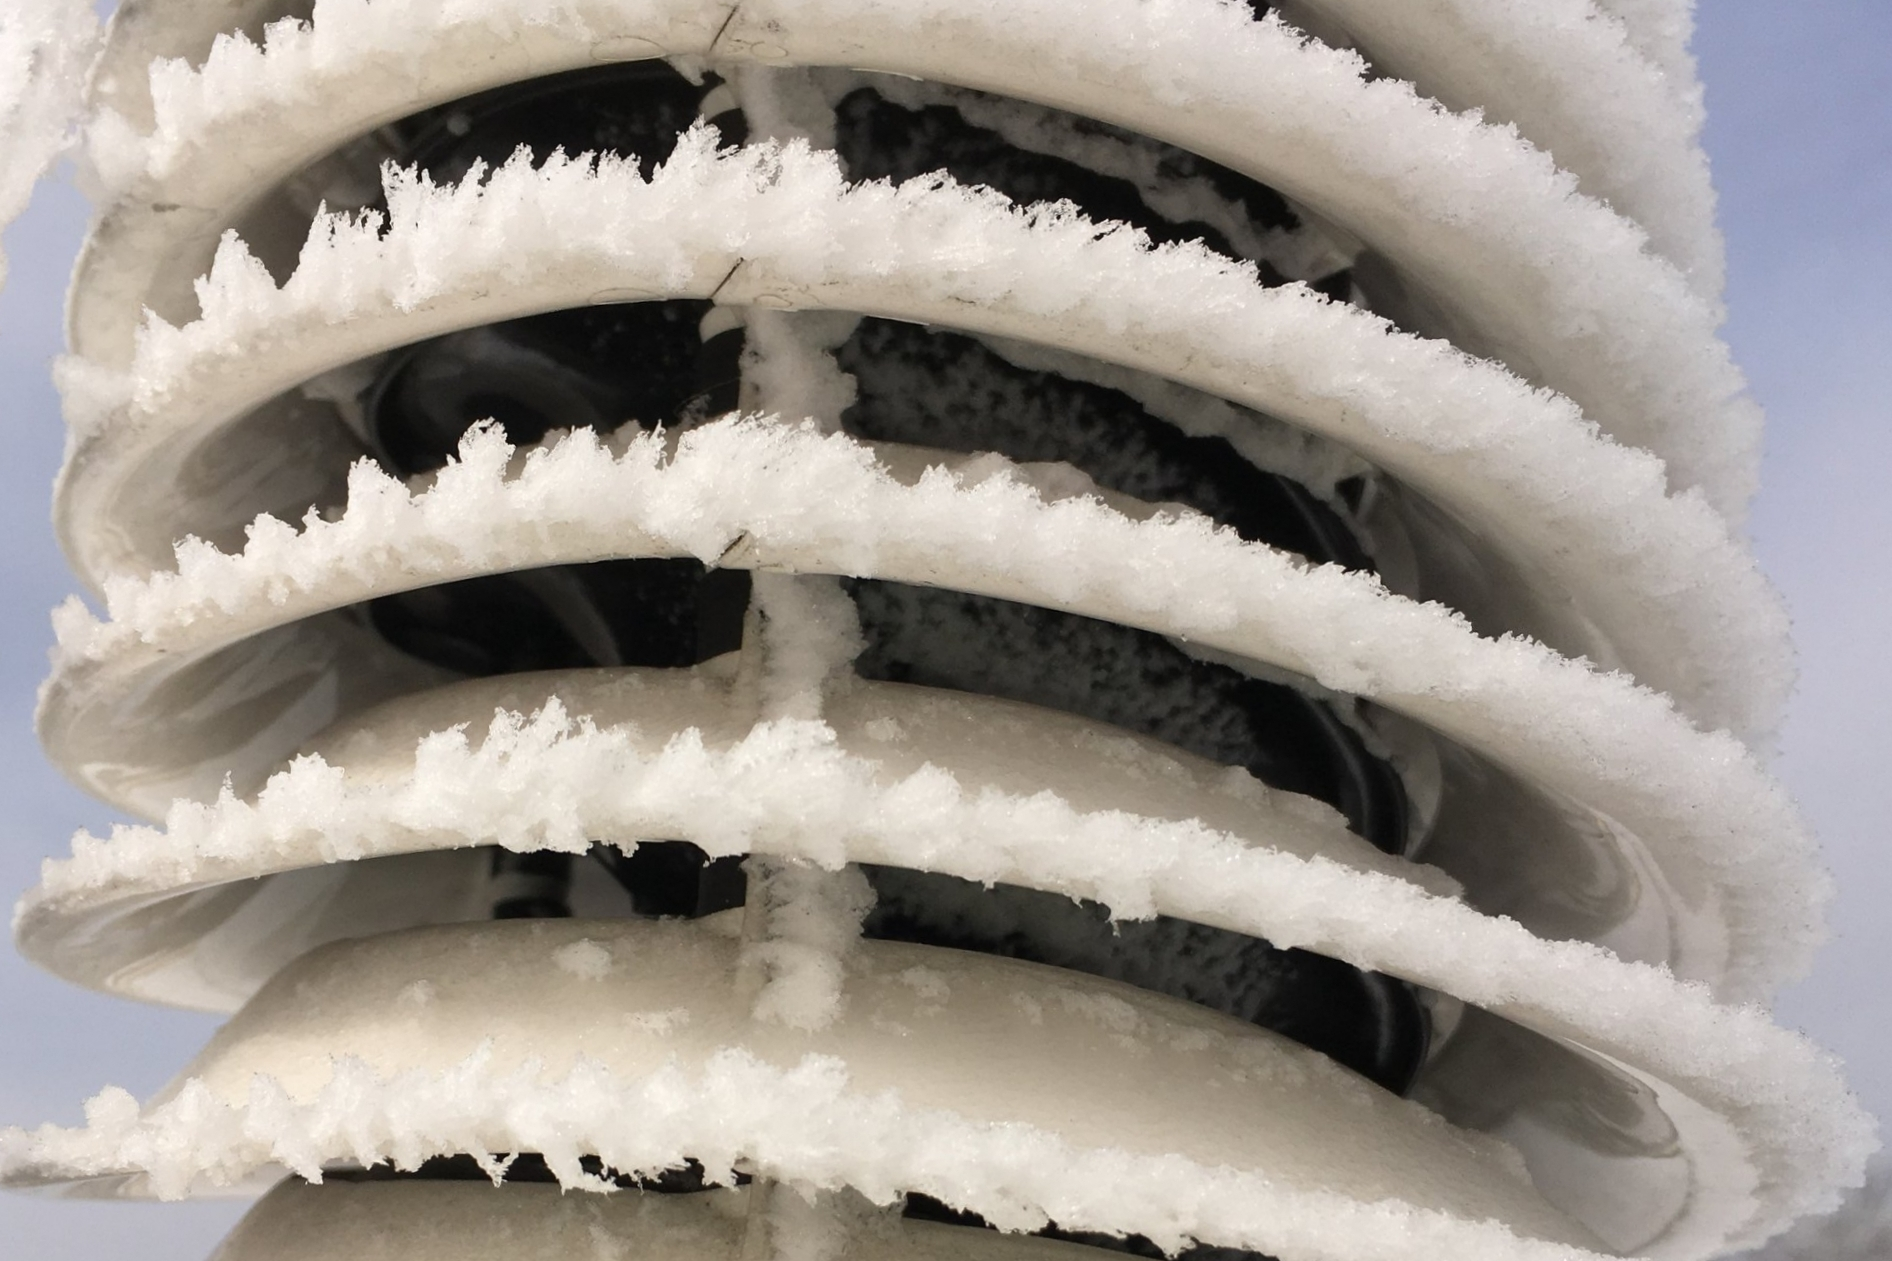 Looking at the inner black louvers OF  METEOSHIELD PROFESSIONAL , one sees ice accumulation on the right side where the airflow is restricted. On the left side the air flows freely so the surfaces are clean. This difference causes spiral vortex flow to form and this SPINNING flow protects the inner sensor from ice accumulation.